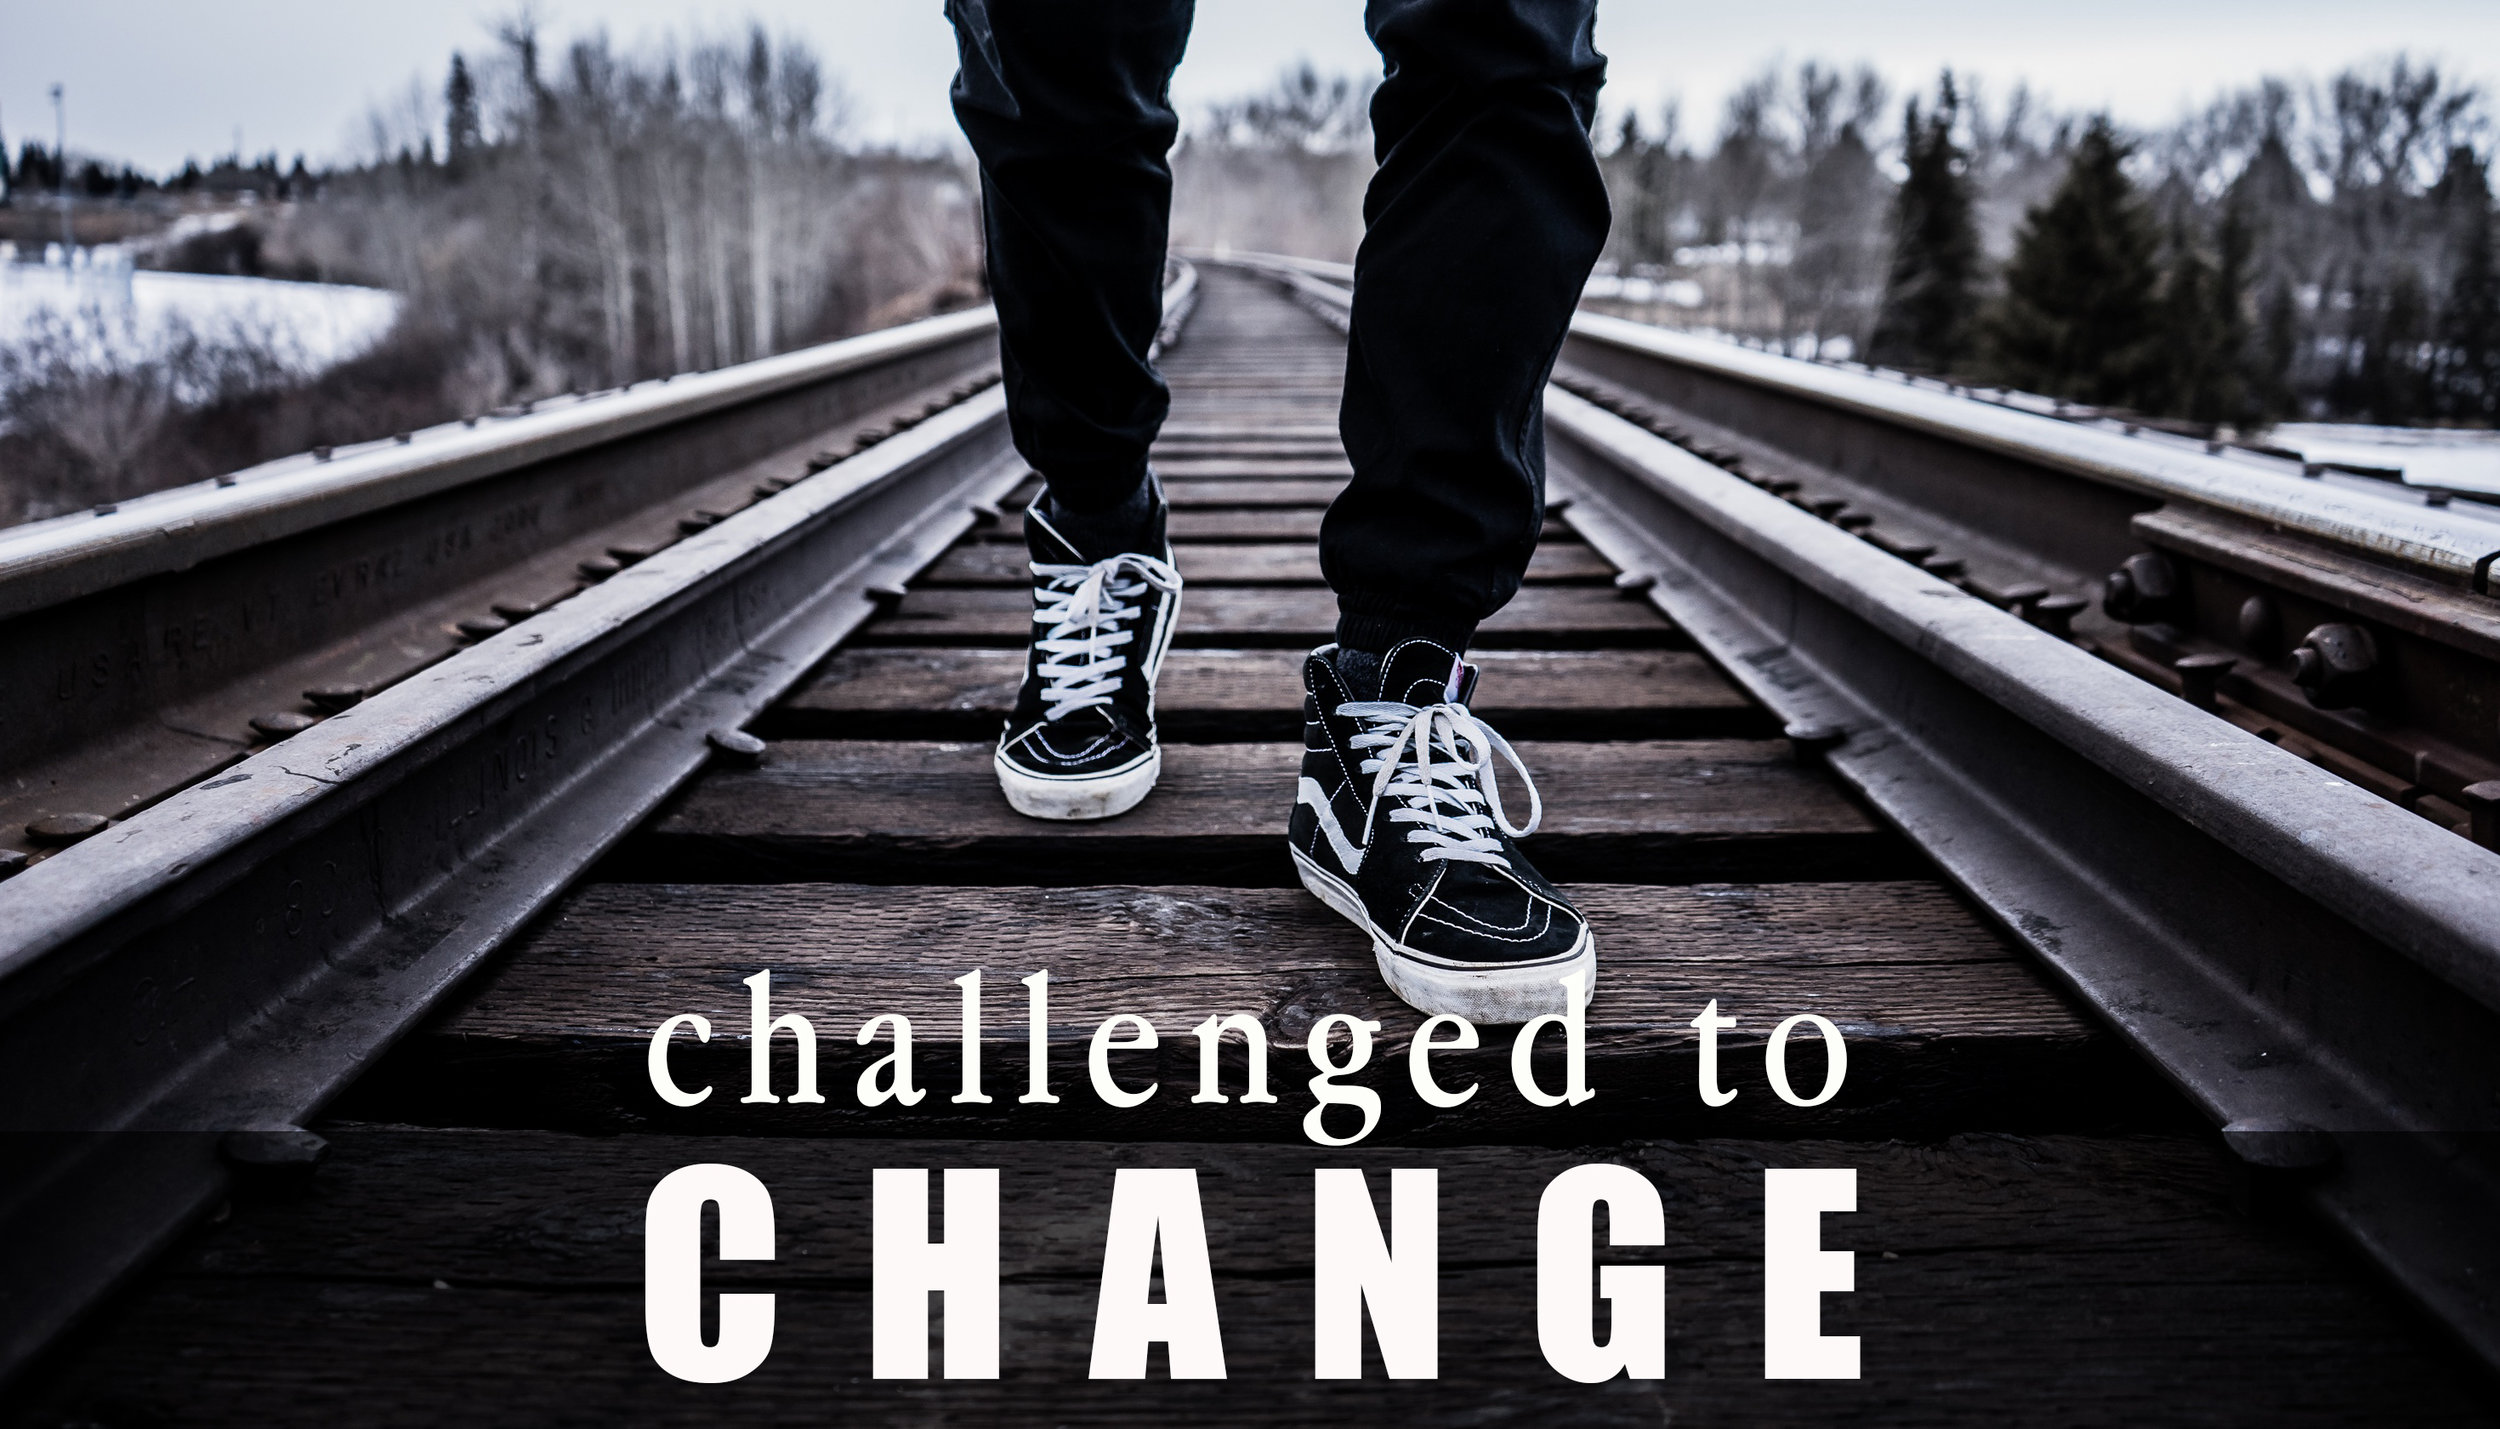 challenged-to-change.jpg